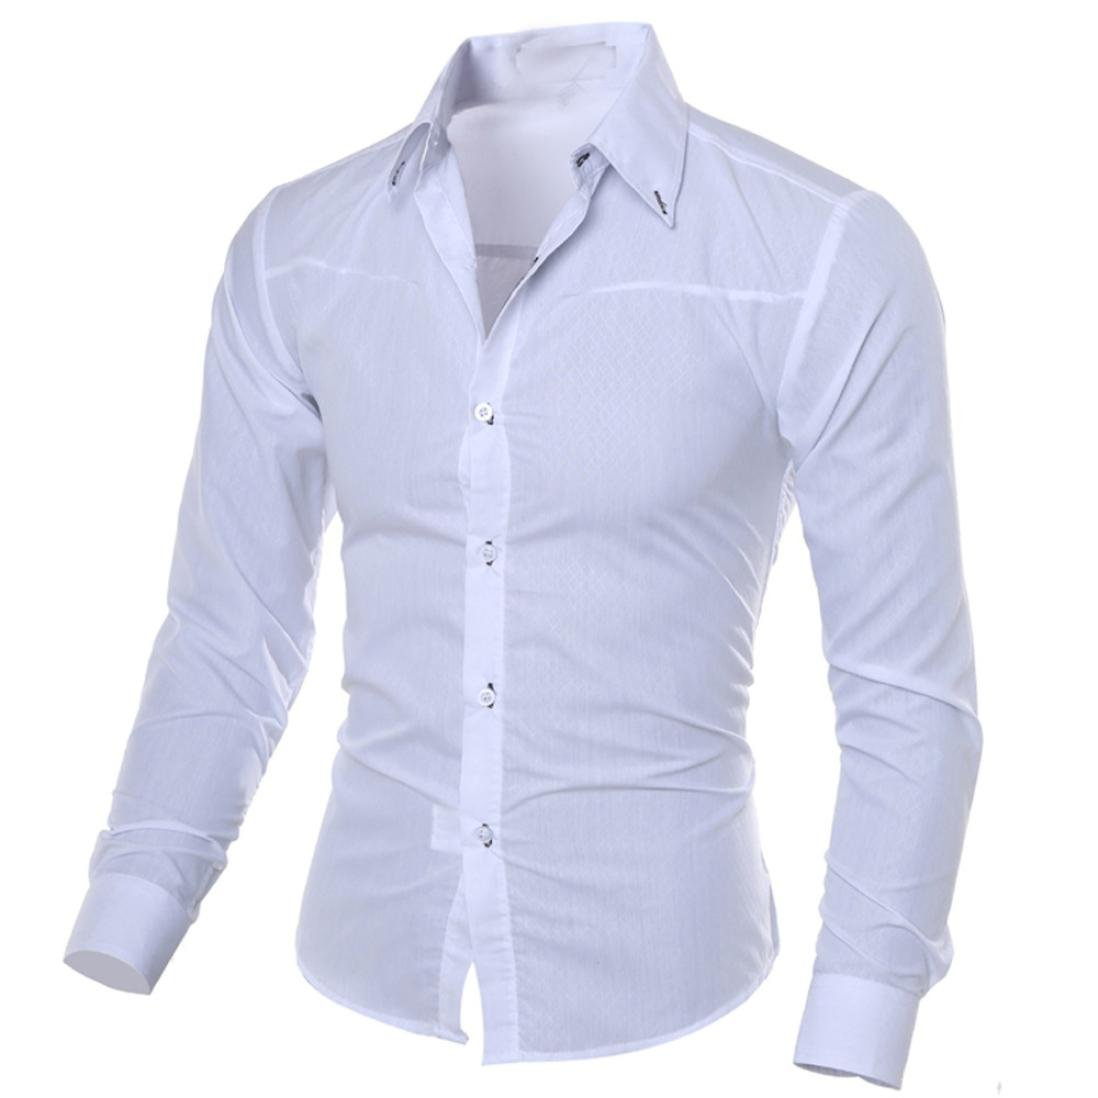 Easytoy Mens Classic Slim Fit Shirts Breathable Long Sleeve Button Down Business Dress Shirt (White, S)